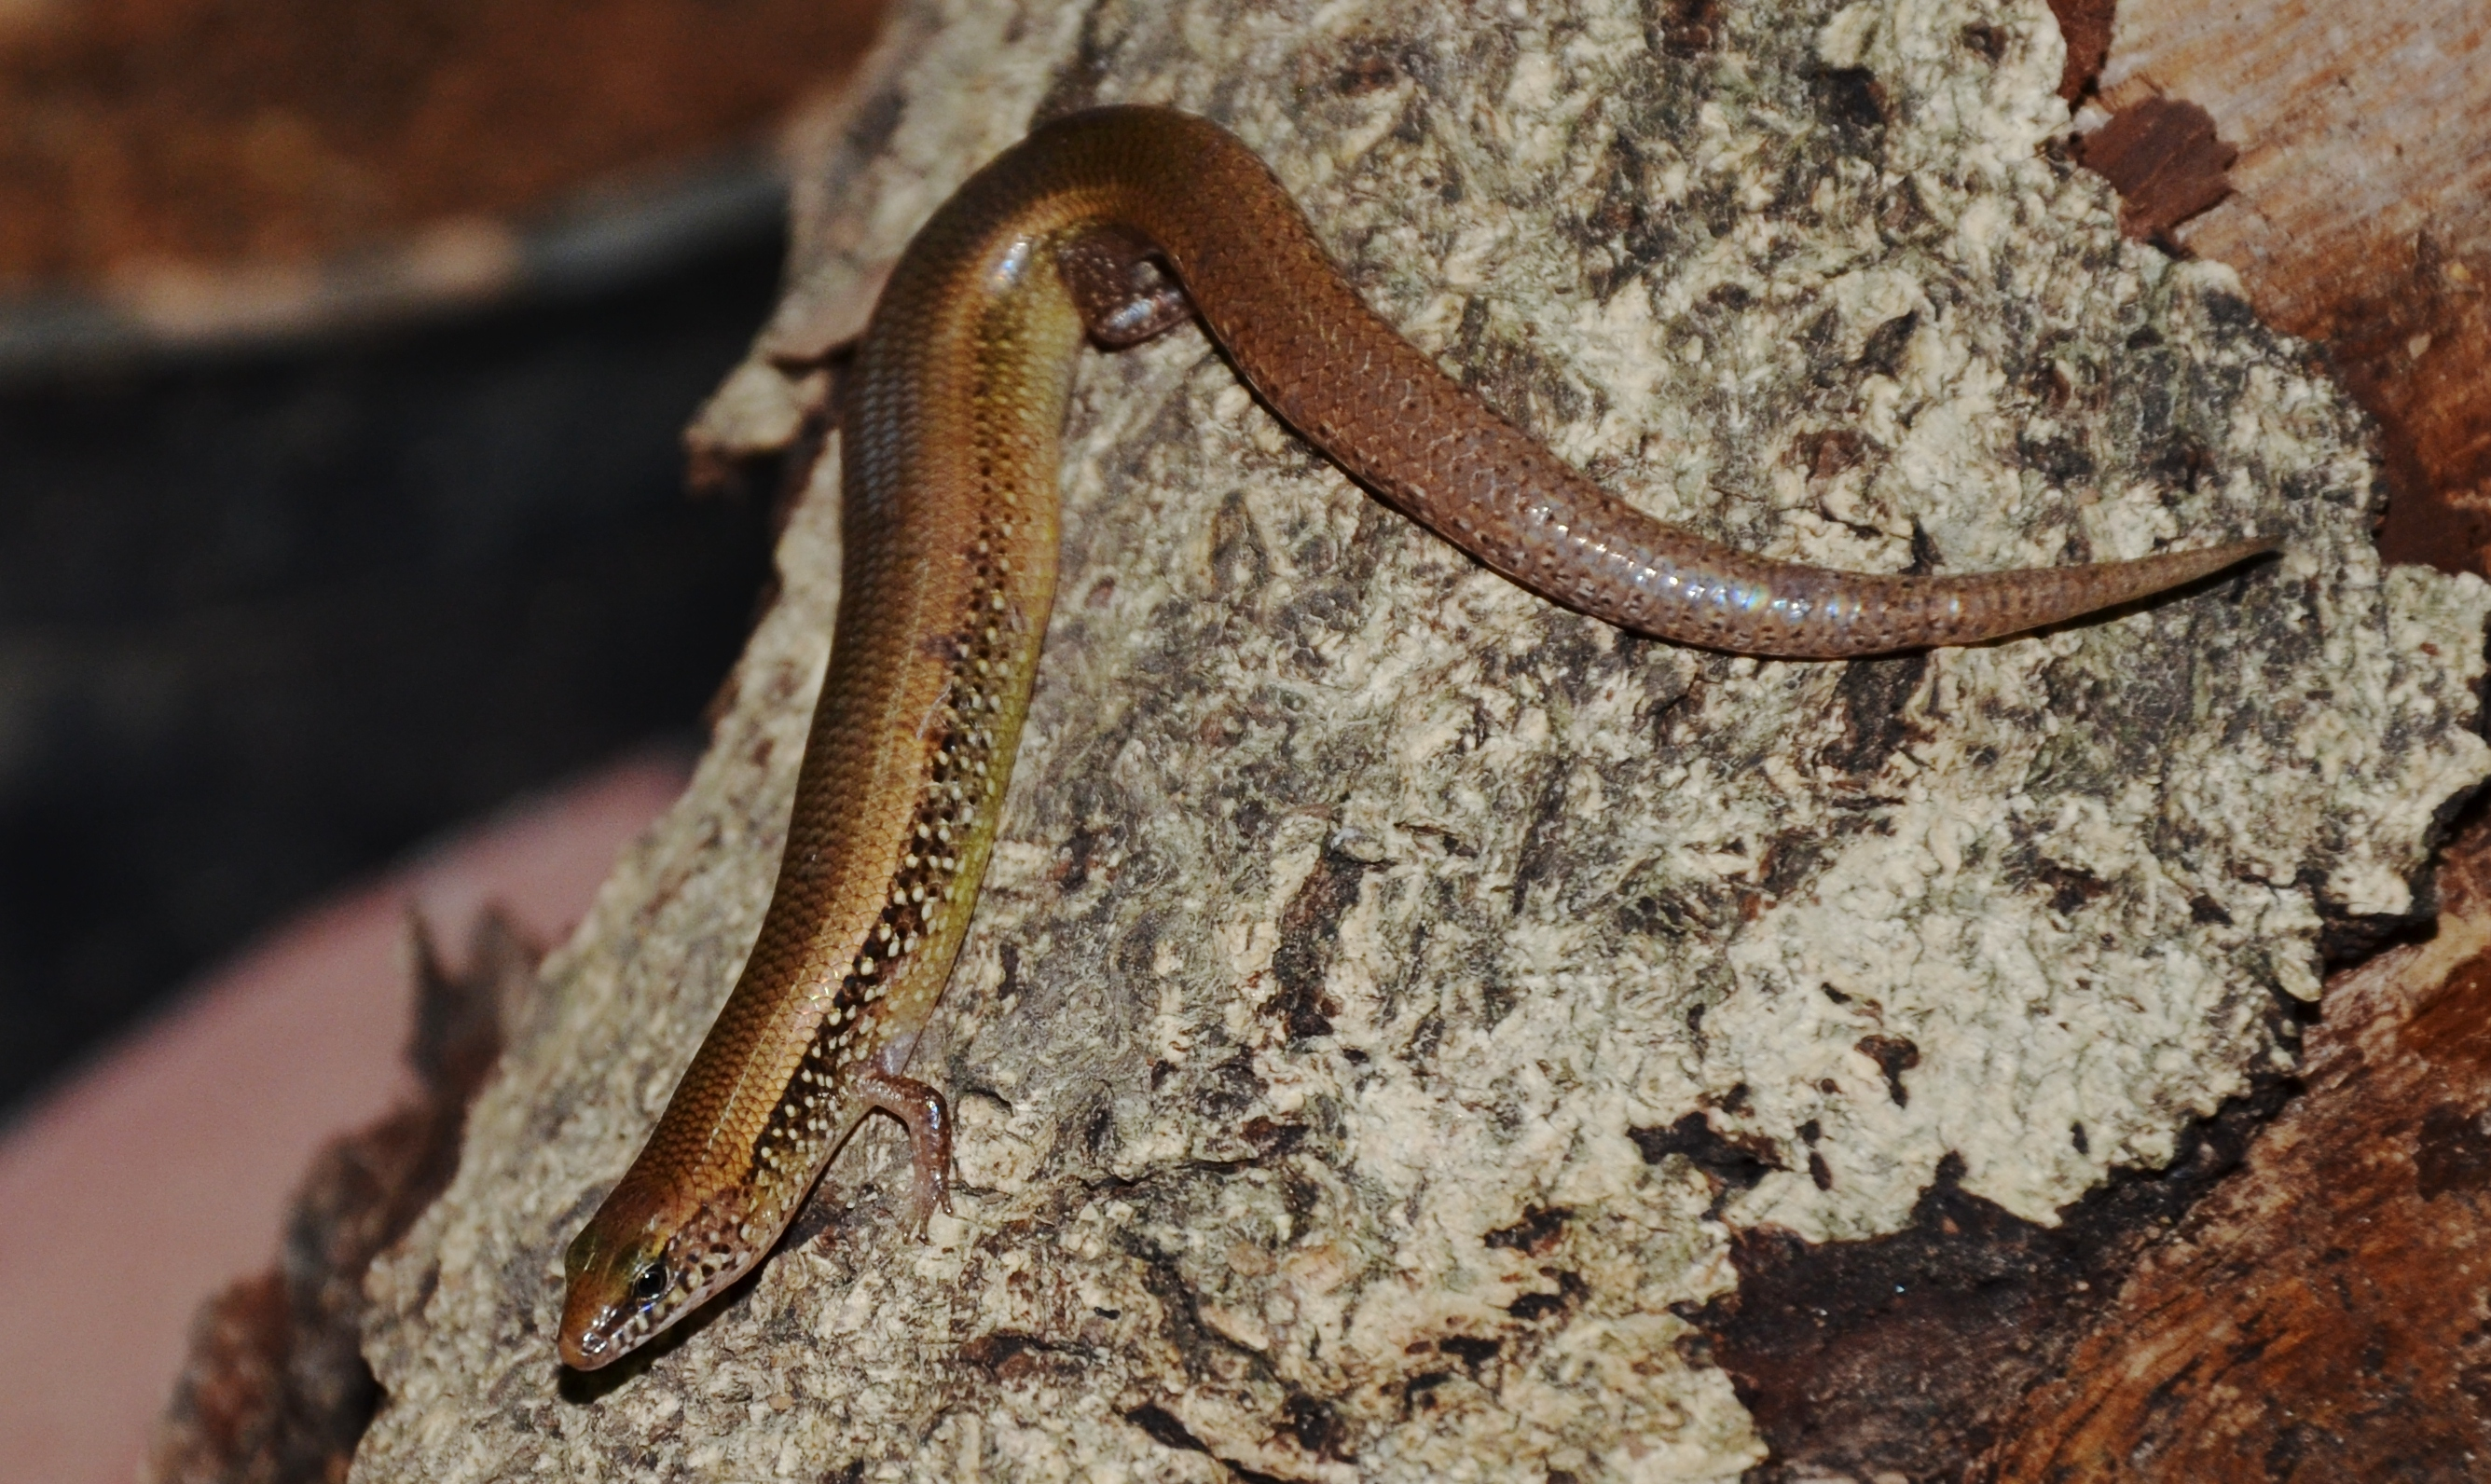 Image of White-spotted Supple Skink